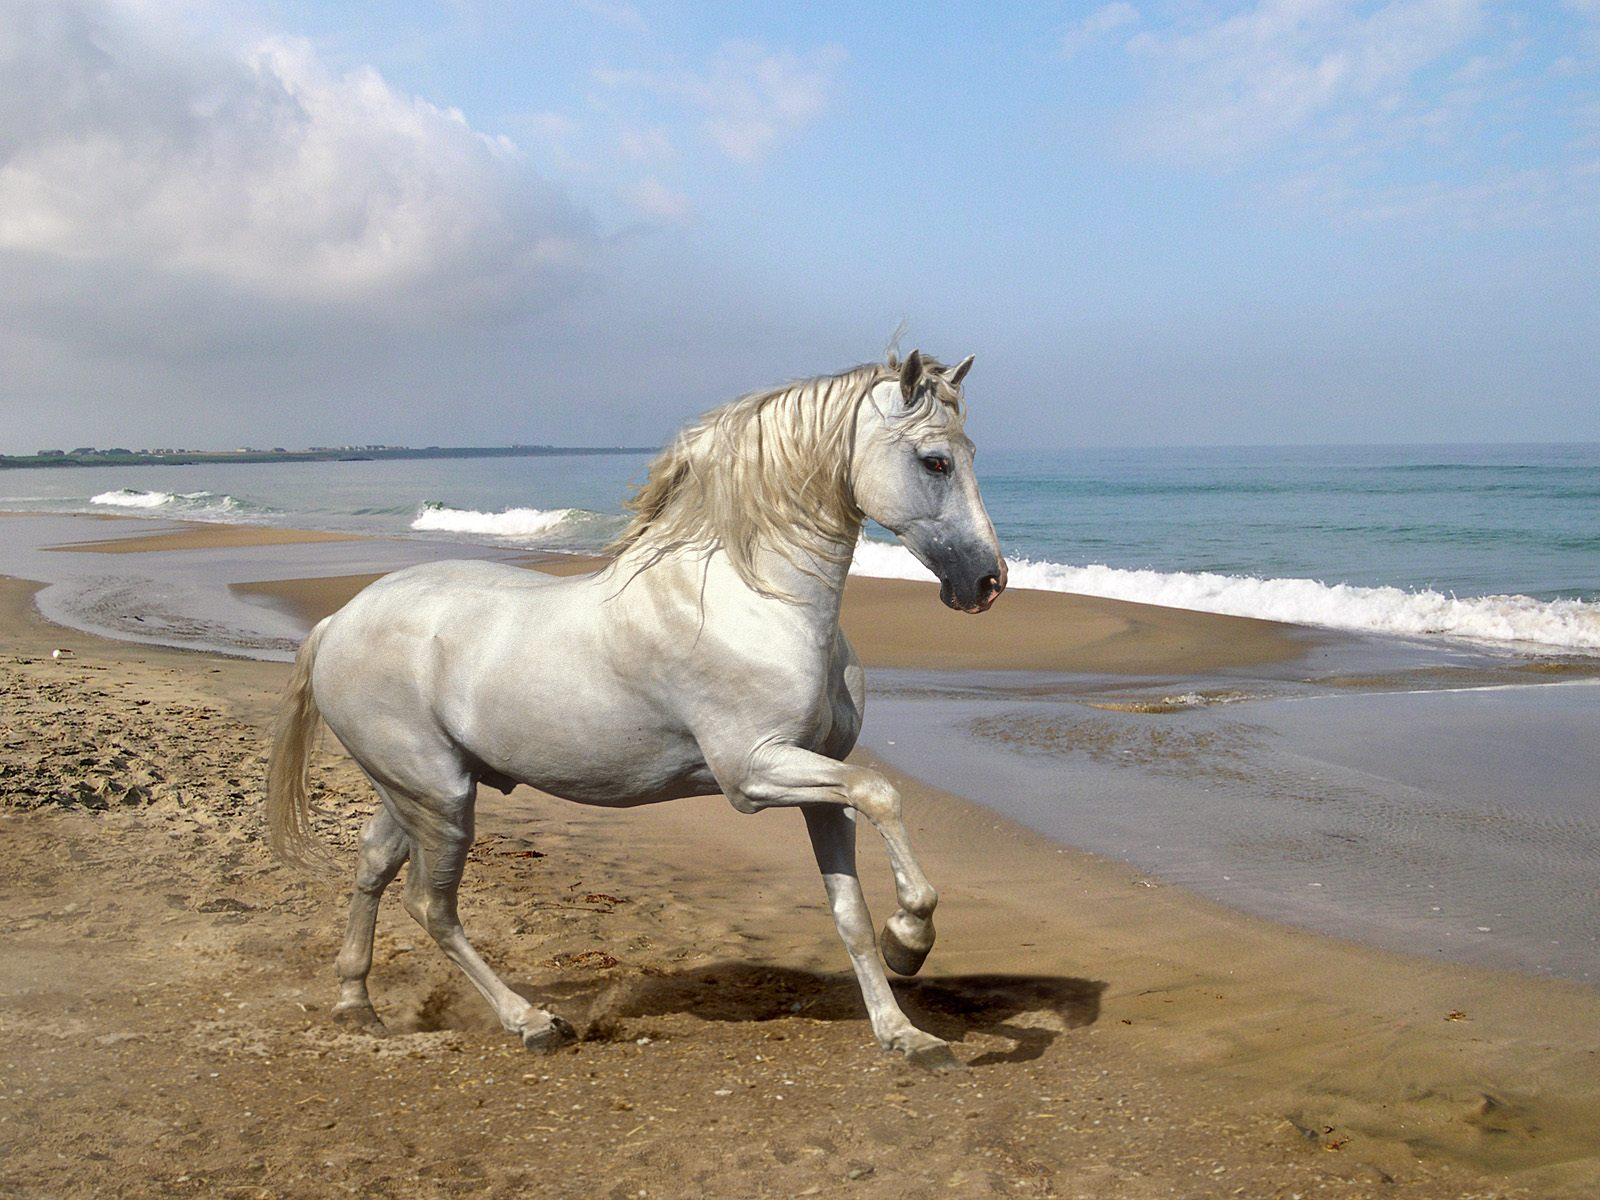 Best Wallpaper Horse Beach - white-horse-on-beach  You Should Have_696411.jpg